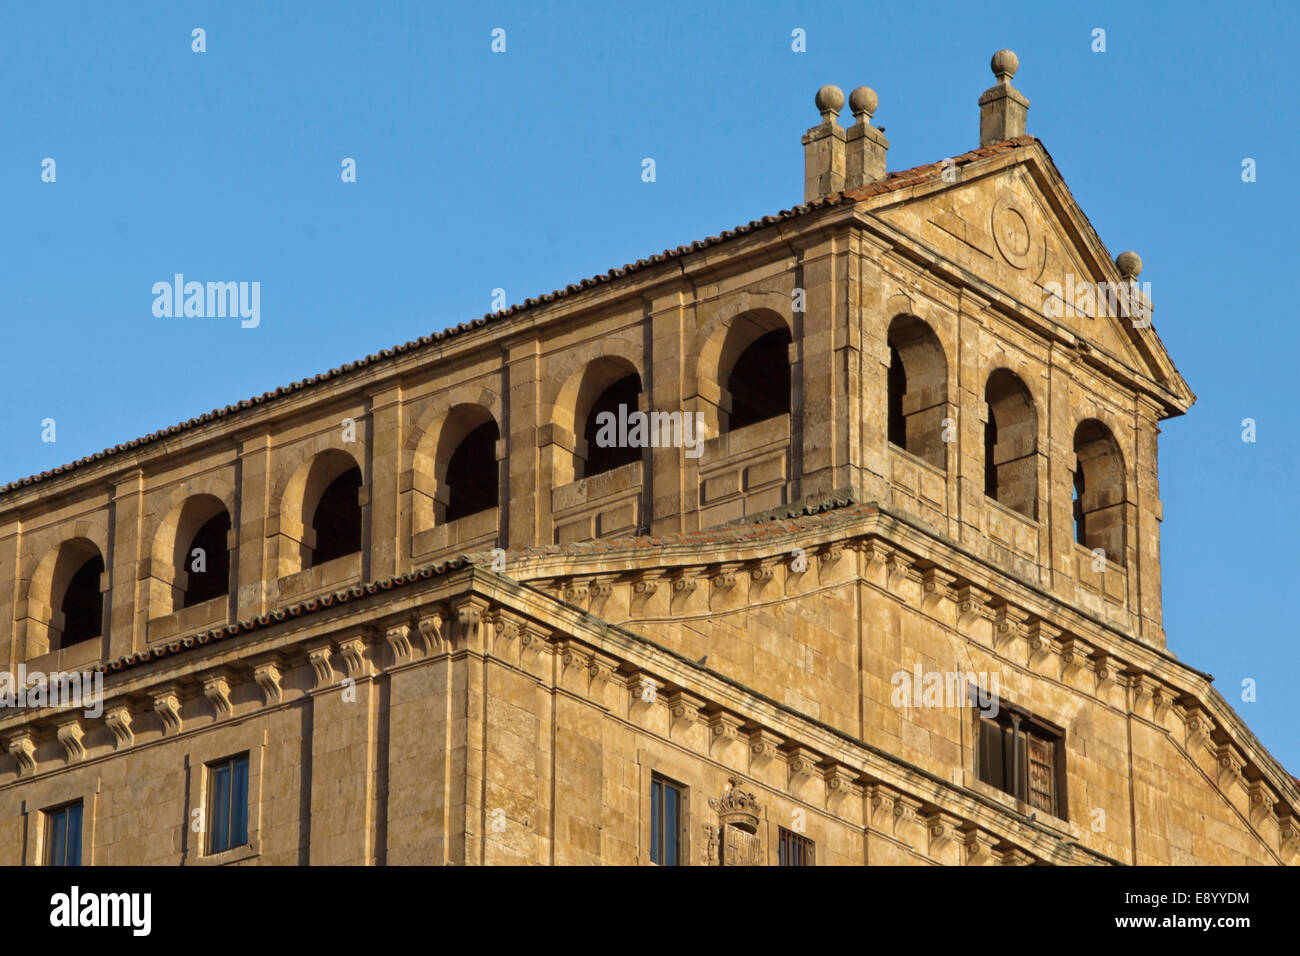 La Cleraçia, Salamanca, Castilla y León, Spain: View on the Long Gallery, a  three-floored Baroque cloister. - Stock Image